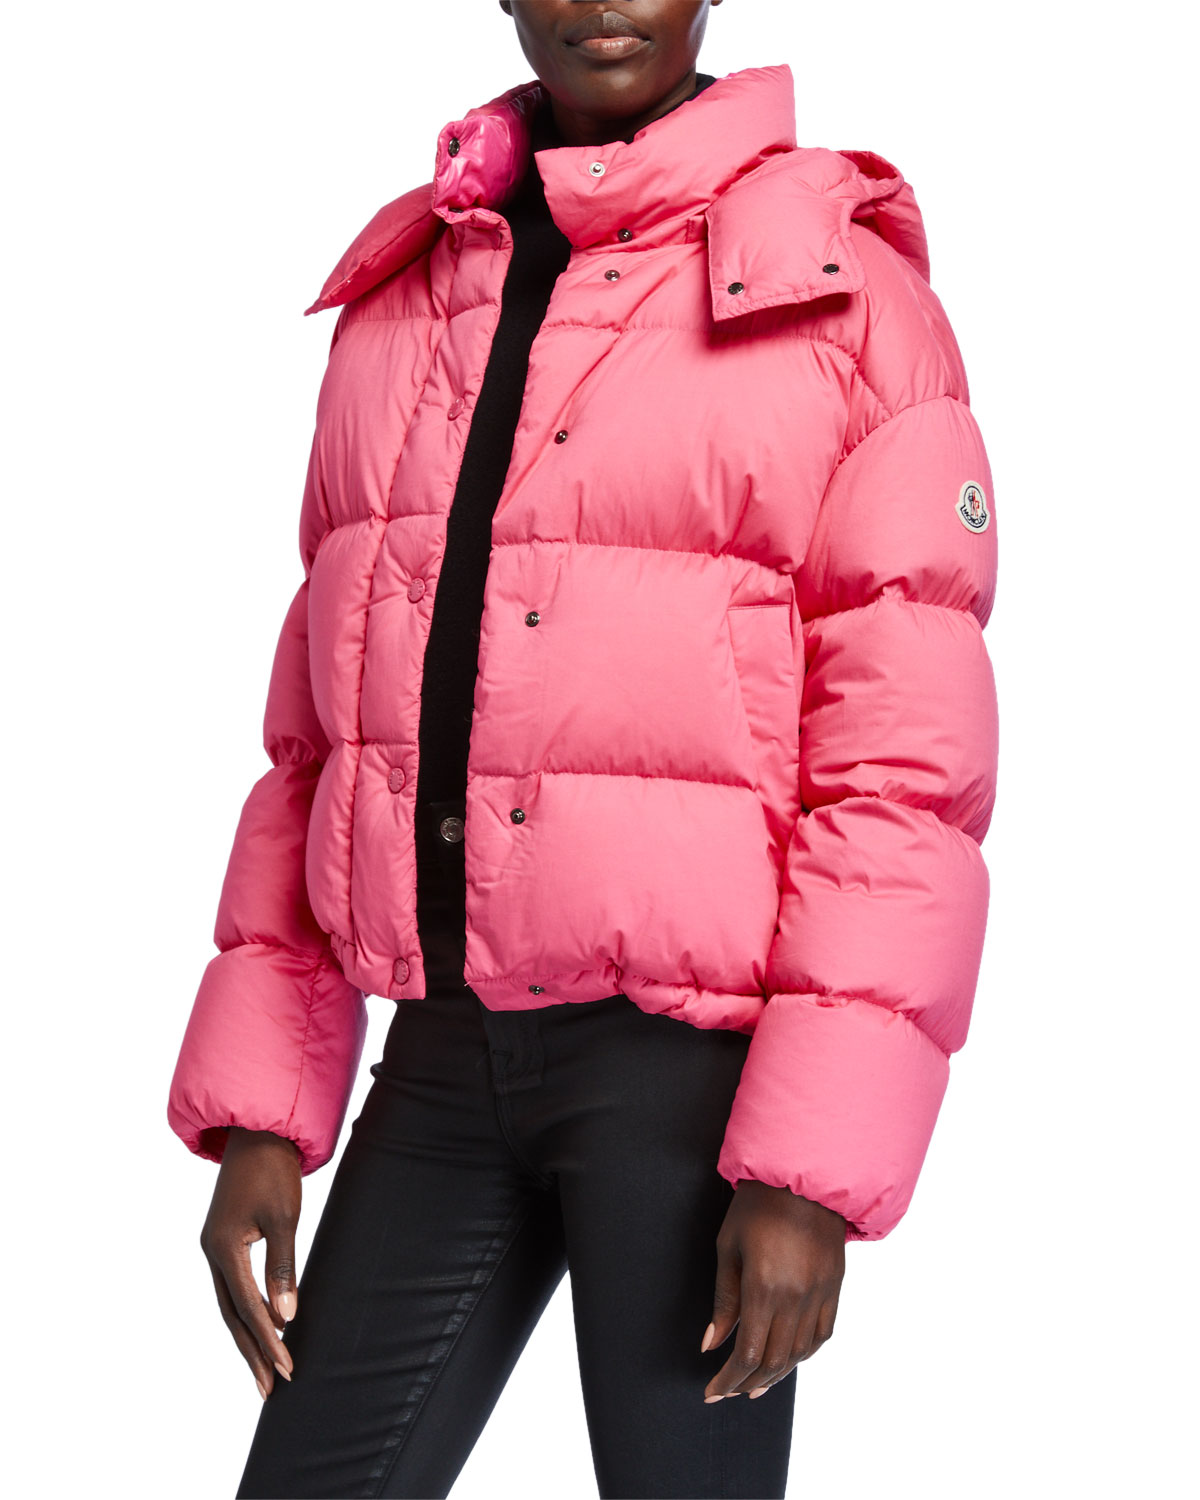 Moncler Jackets ONIA CROPPED PUFFER JACKET W/ DETACHABLE HOOD